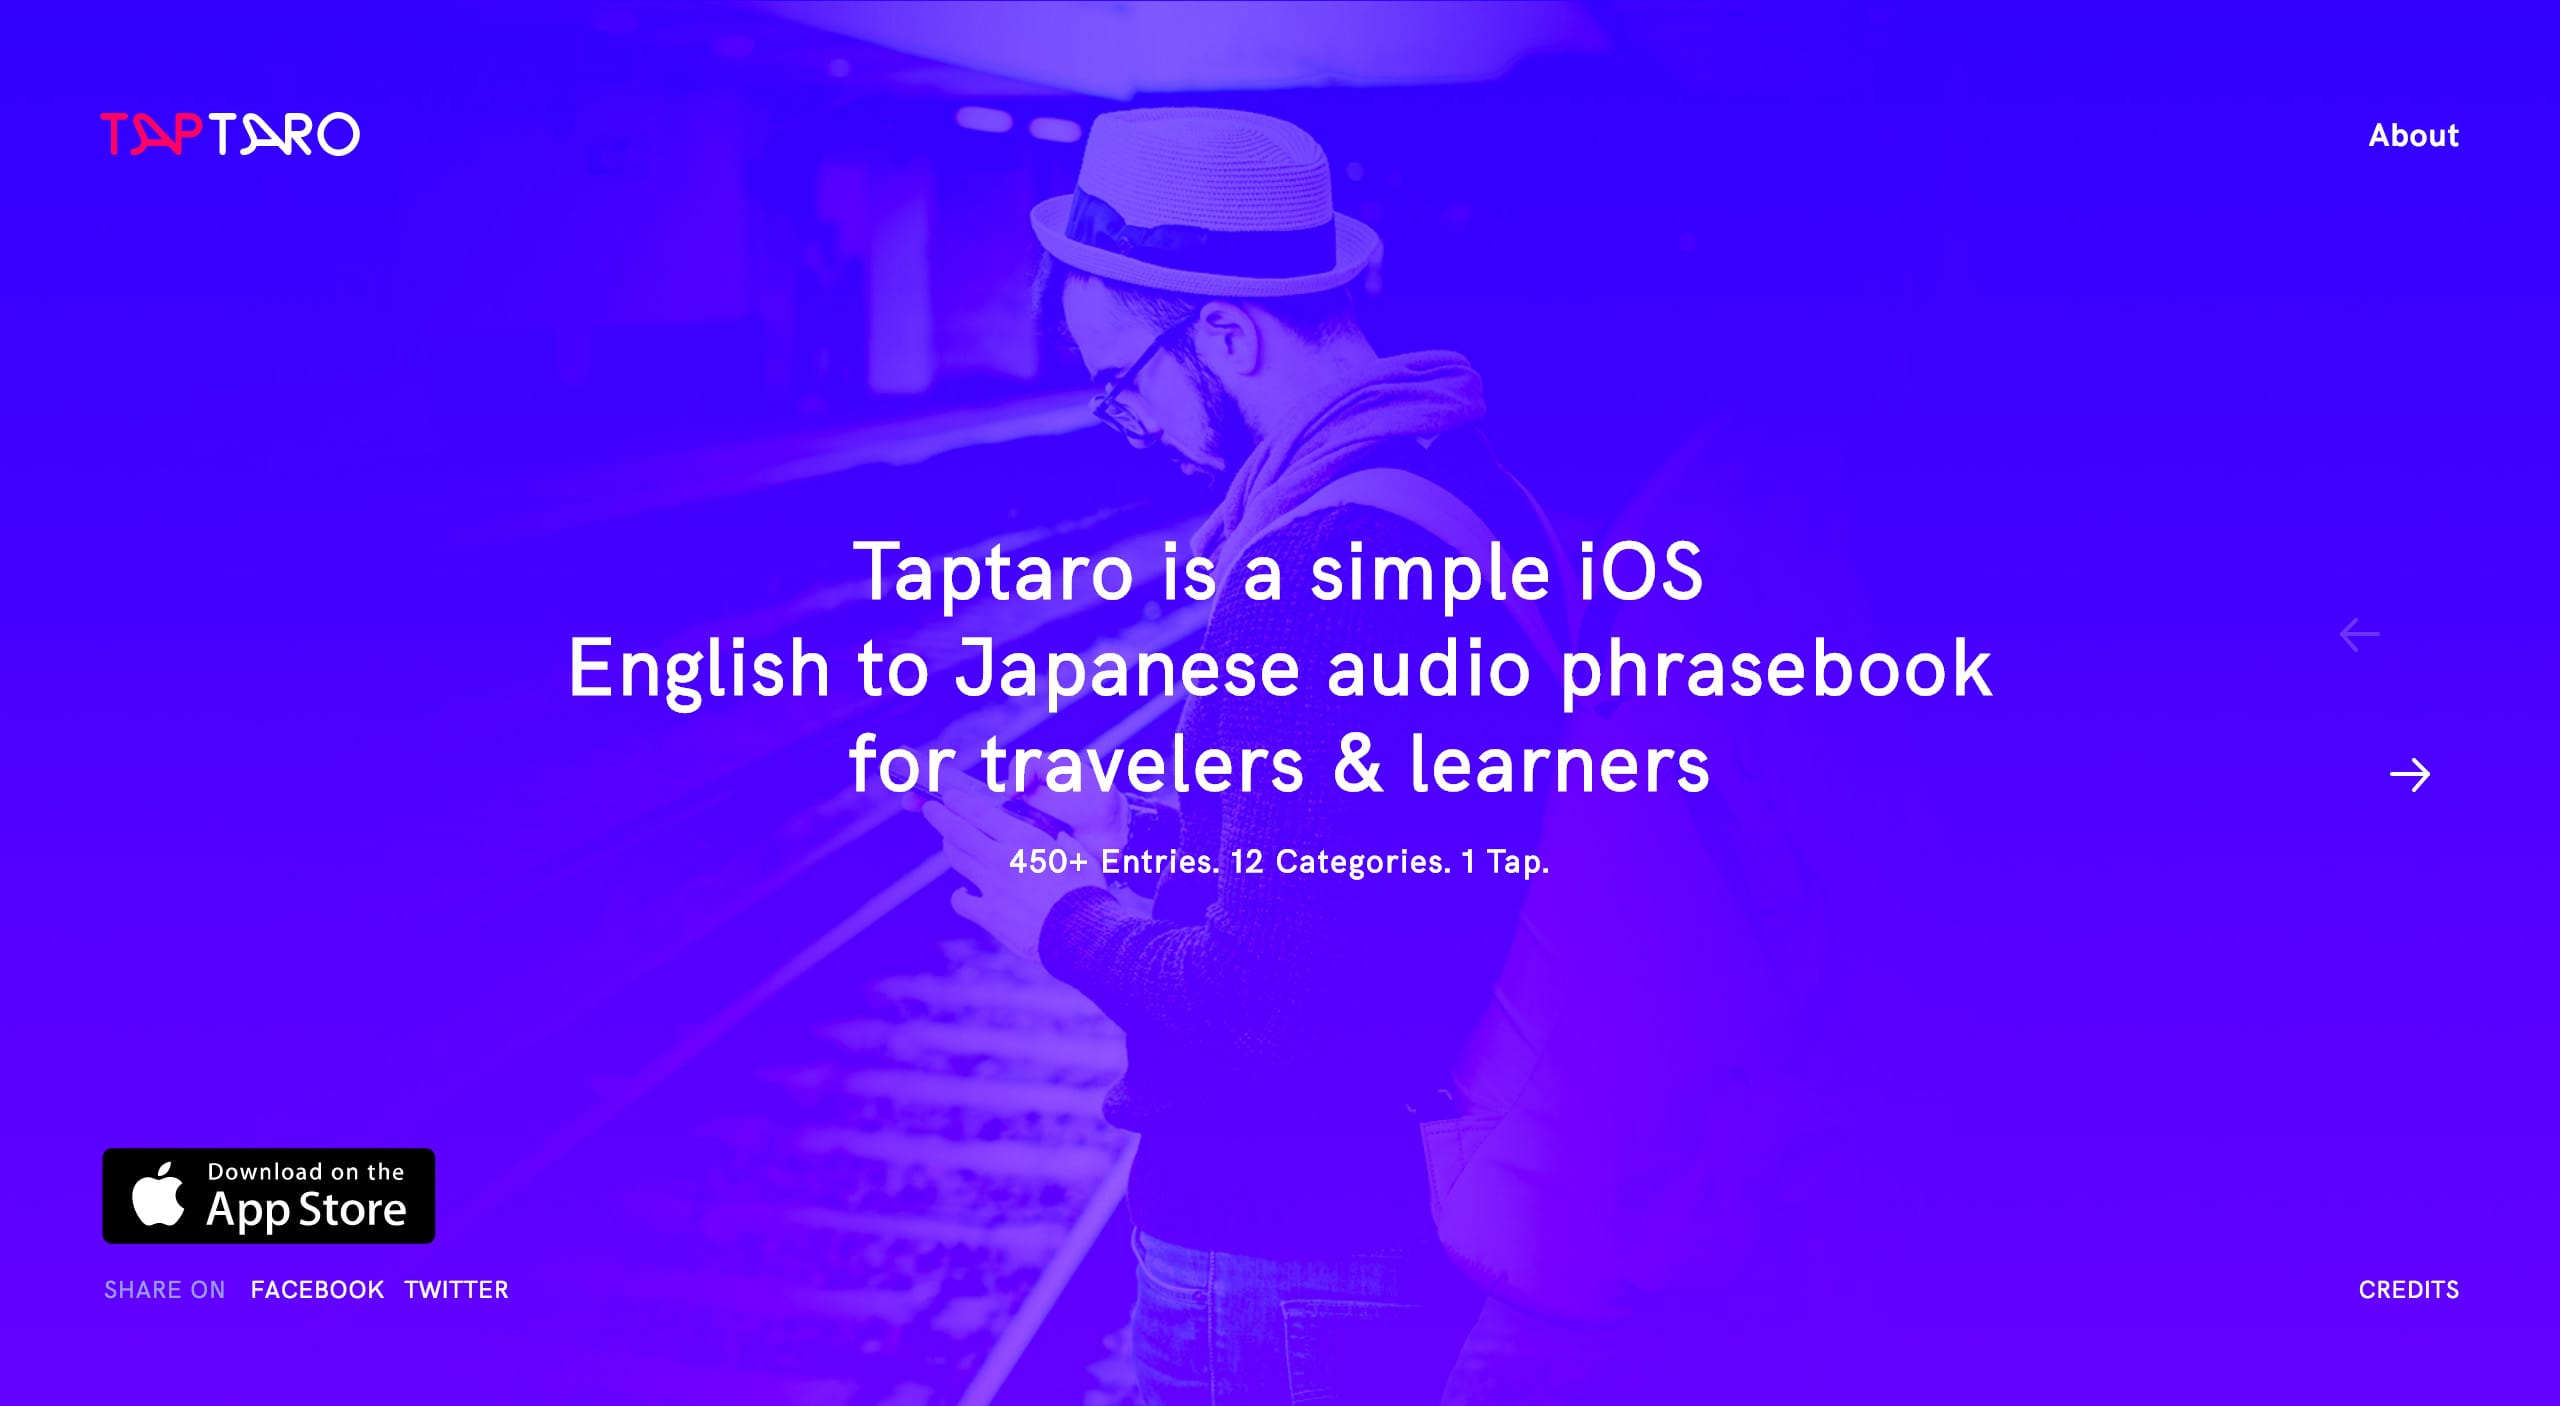 Taptaro Website Screenshot